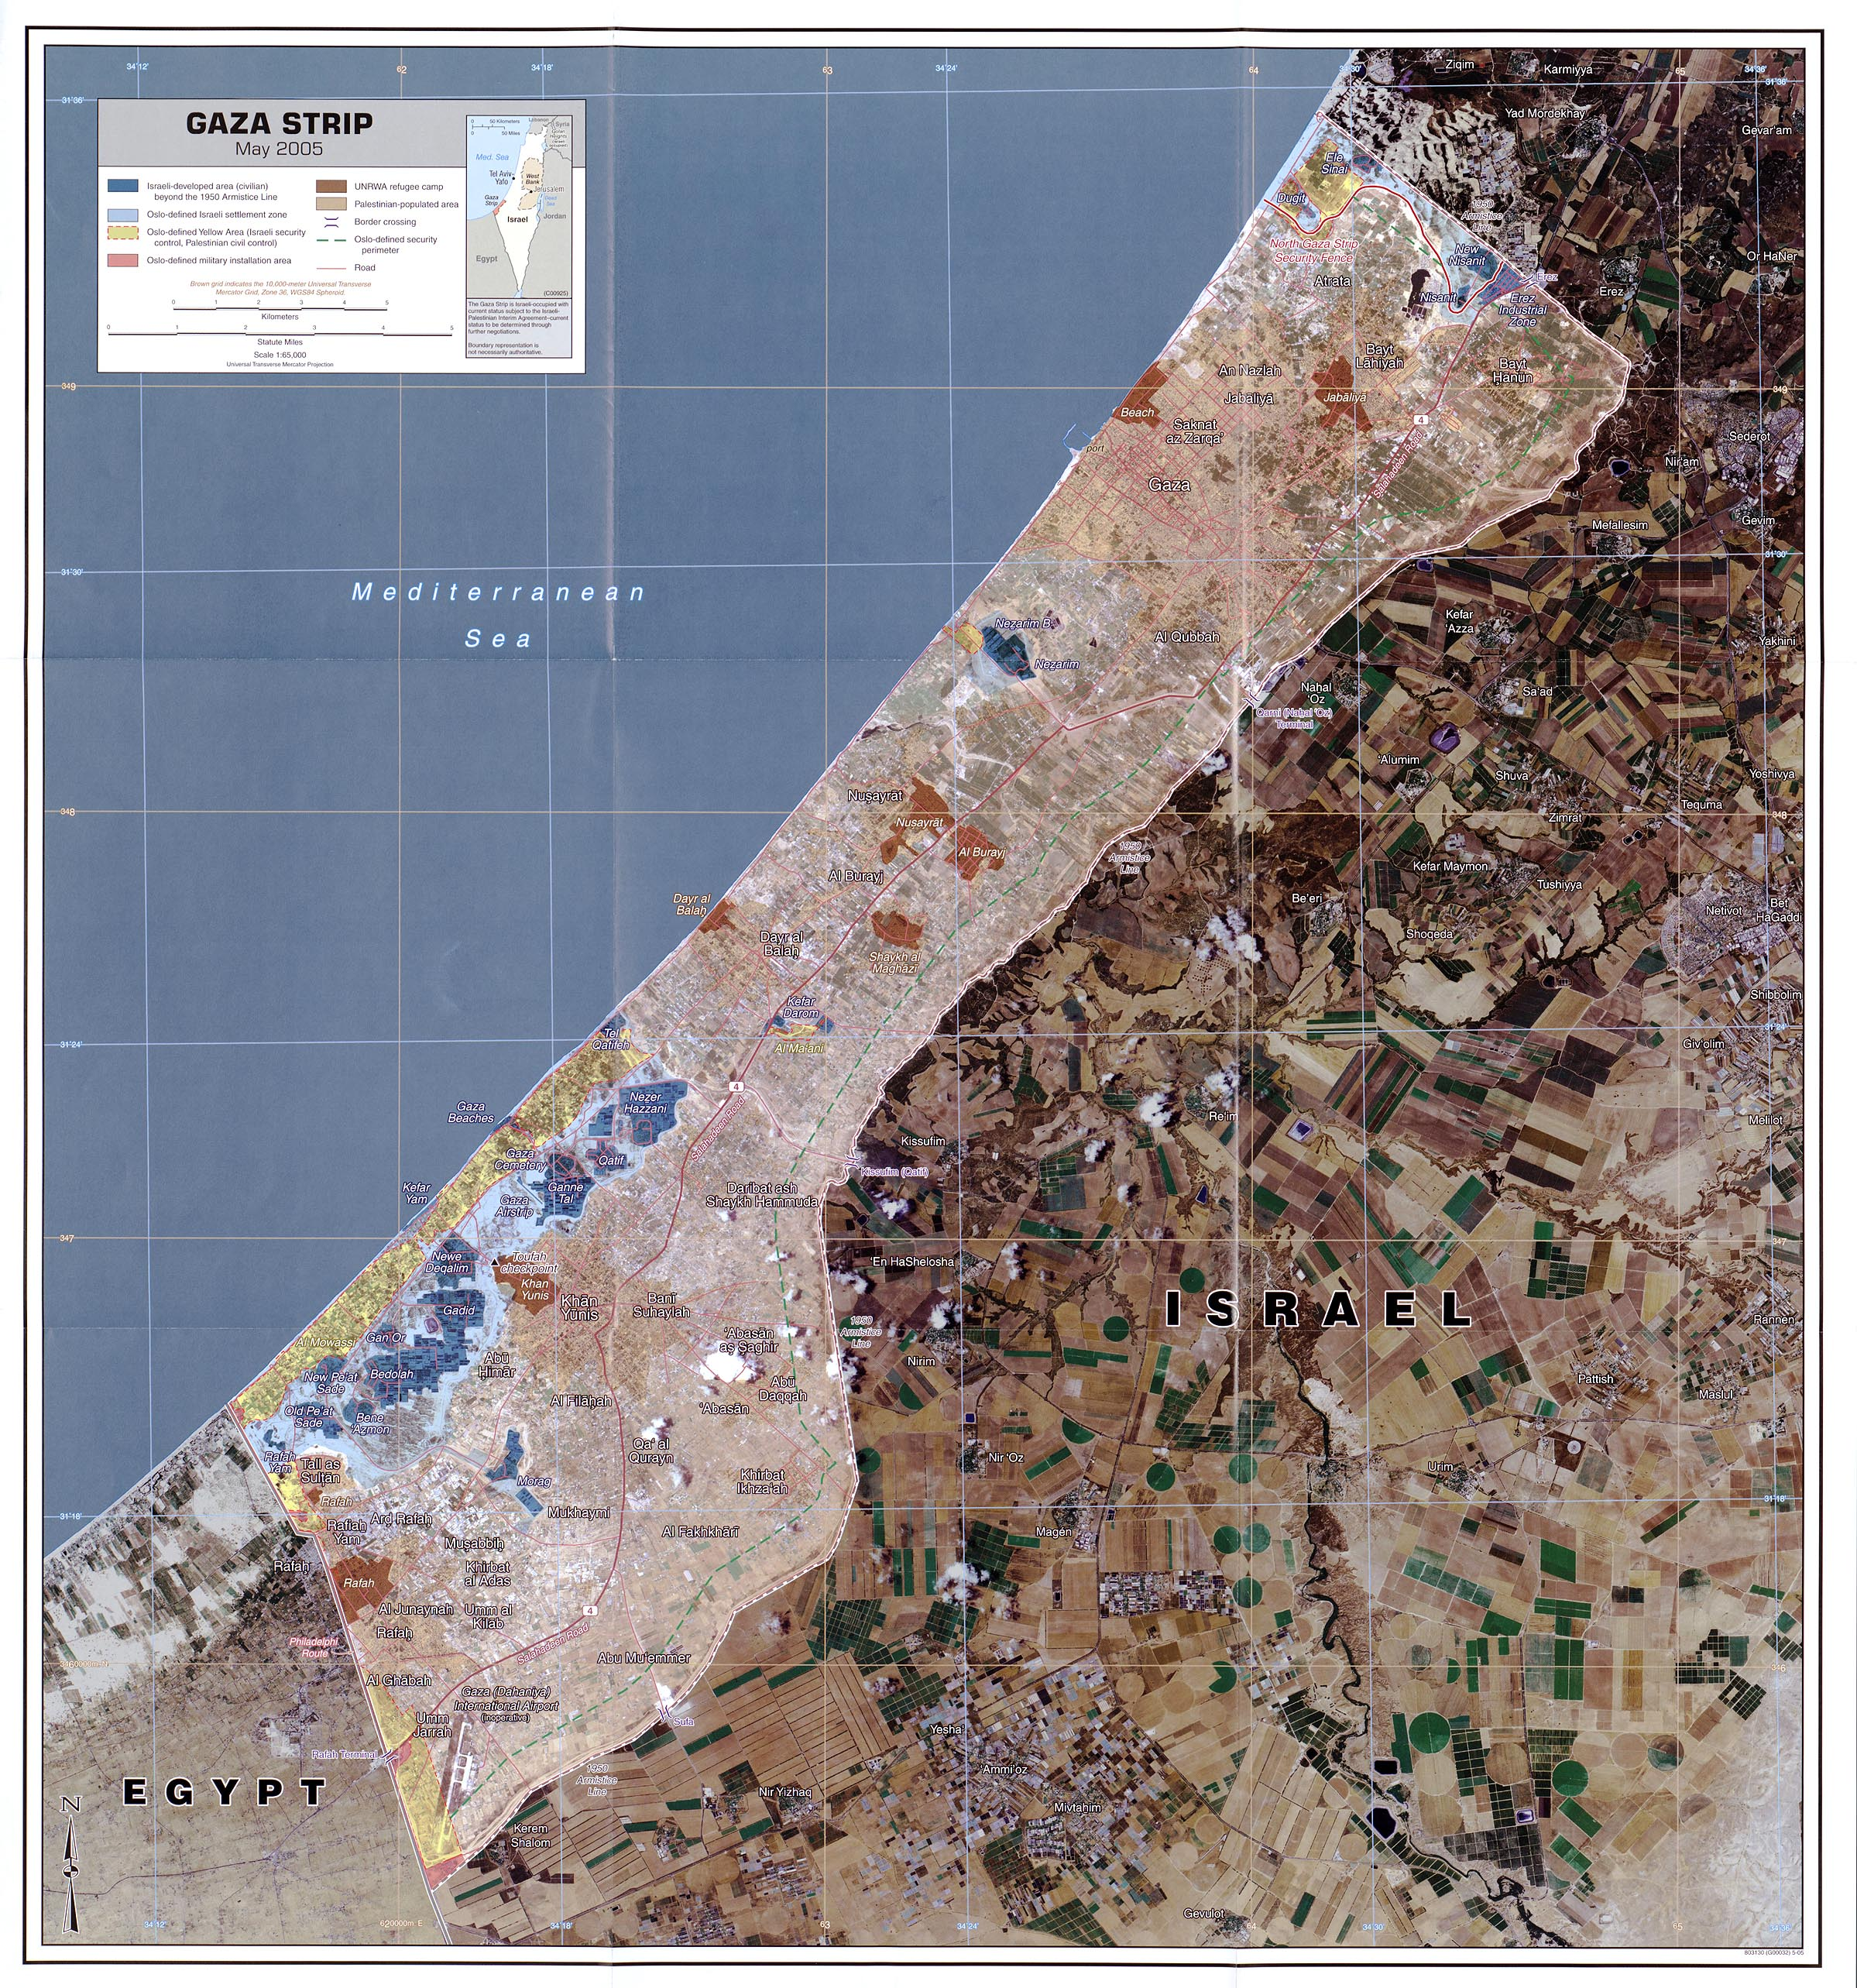 http://upload.wikimedia.org/wikipedia/commons/8/8c/Gaza_strip_may_2005.jpg